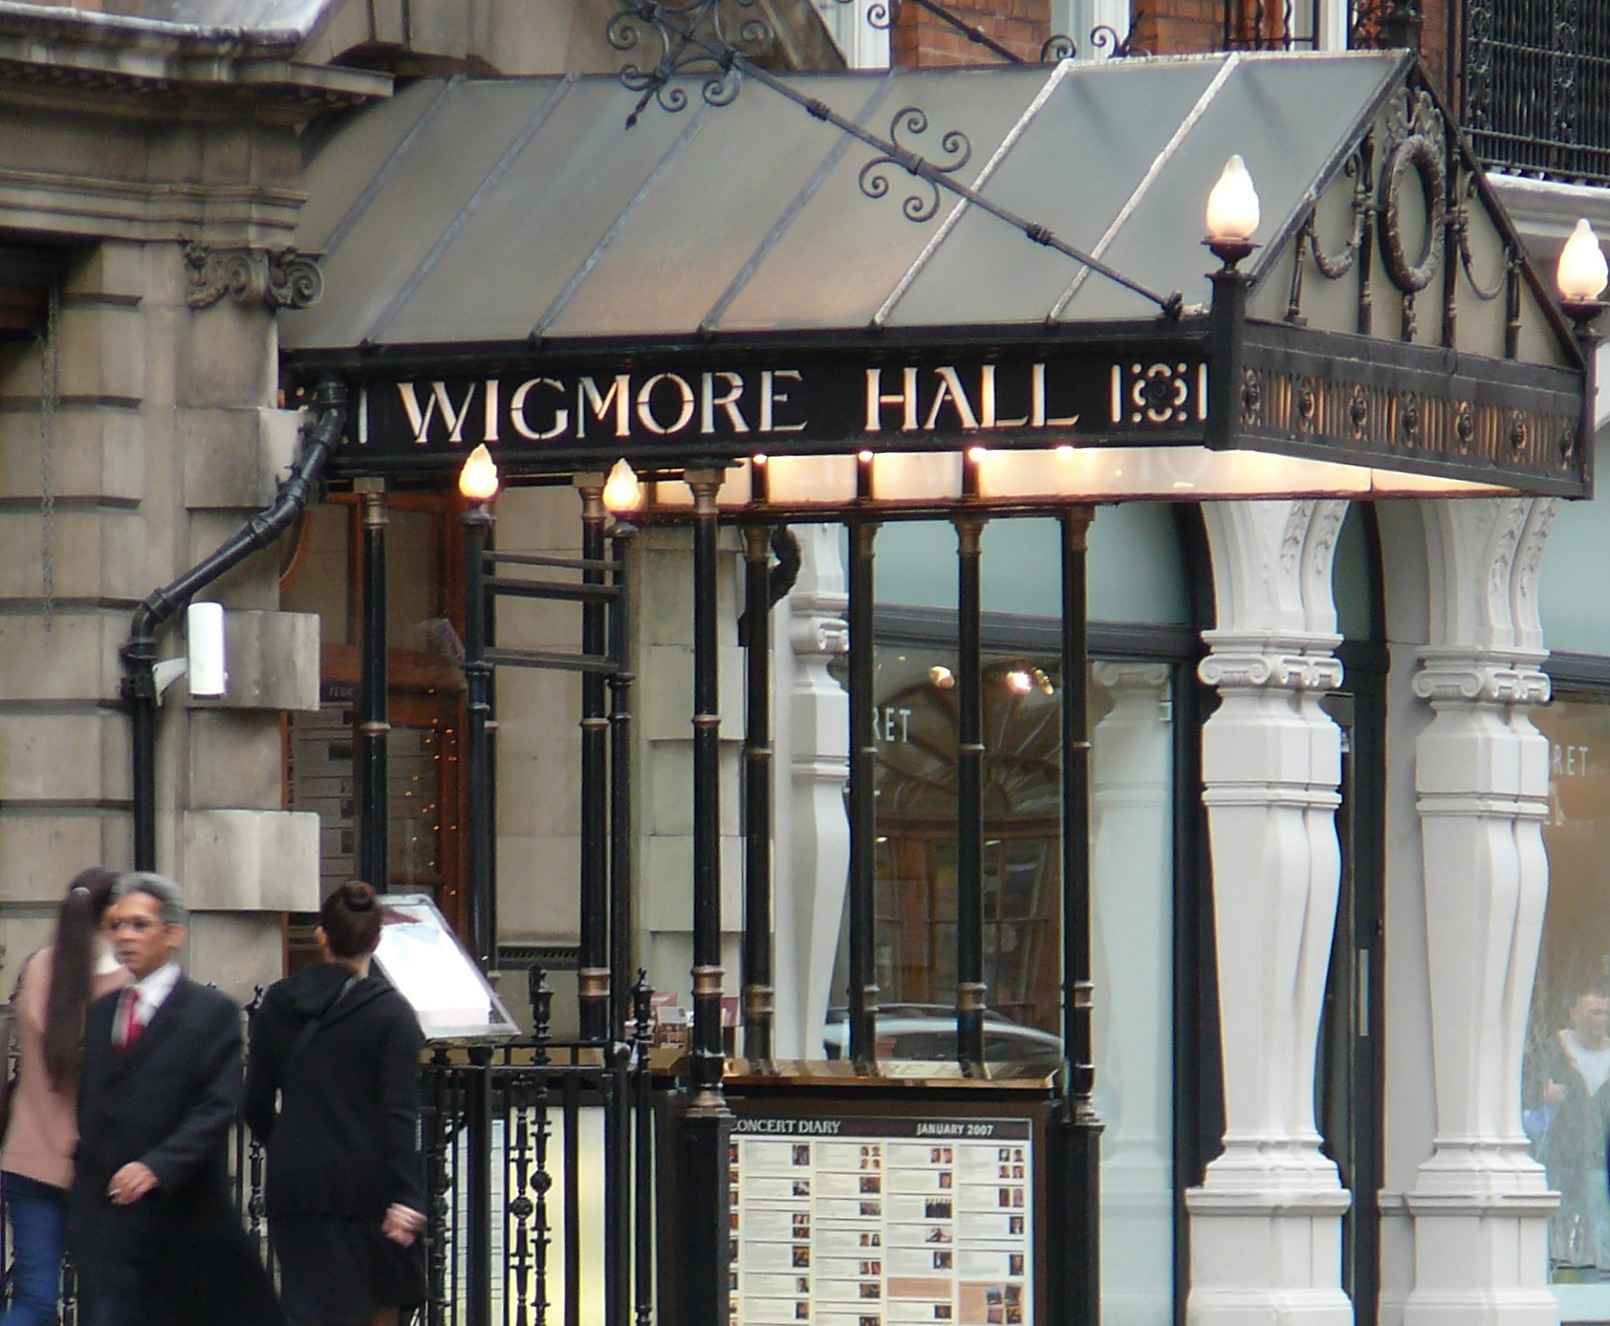 London's famous Wigmore Hall will be the venue for Irish Heritage's Auditions Day on 10th November